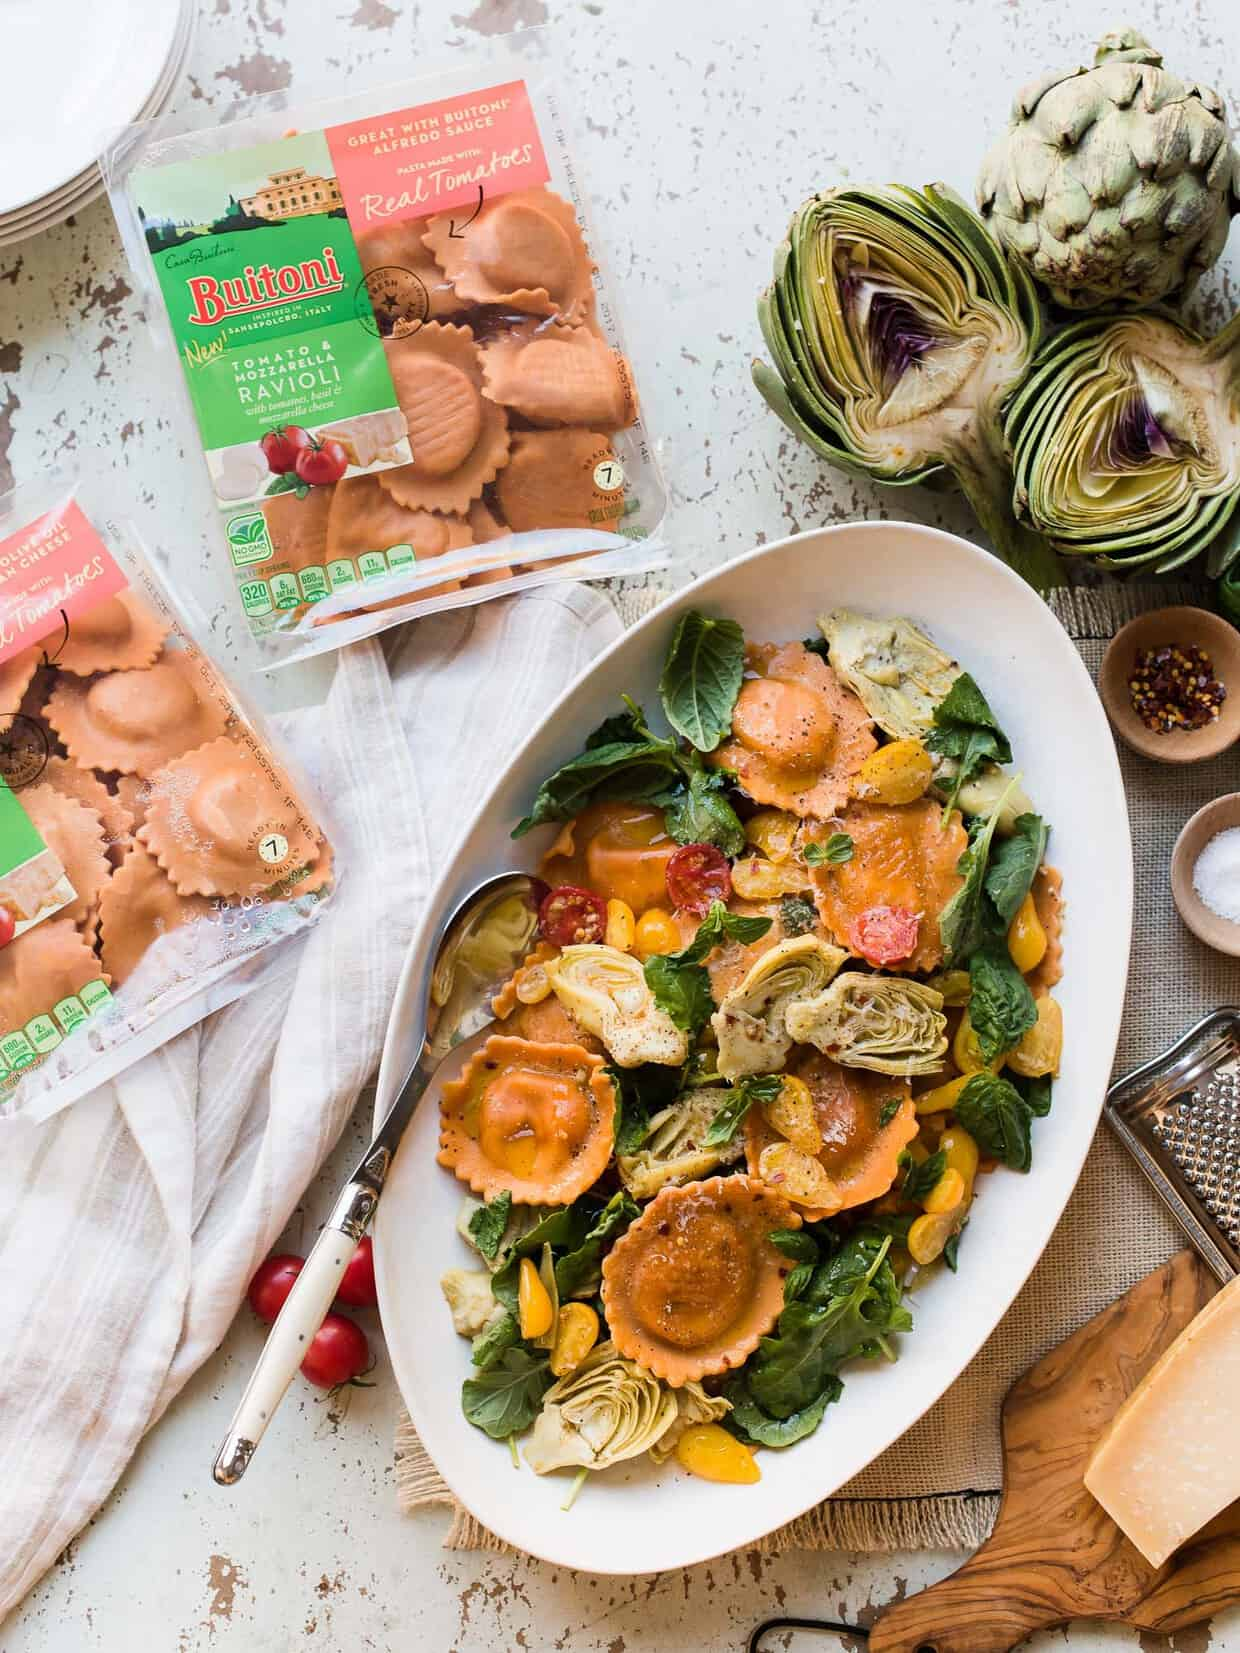 A meal that can go from stove to table in 10 minutes is a dream, especially on busy weeknights. Tomato and Mozzarella Ravioli with Tomatoes, Baby Kale and Artichokes is easy to make with @buitoniusa freshly made pasta, pantry staples and fresh ingredients from the farmer's market! You'll be #CloserToDinner in no time! #ad